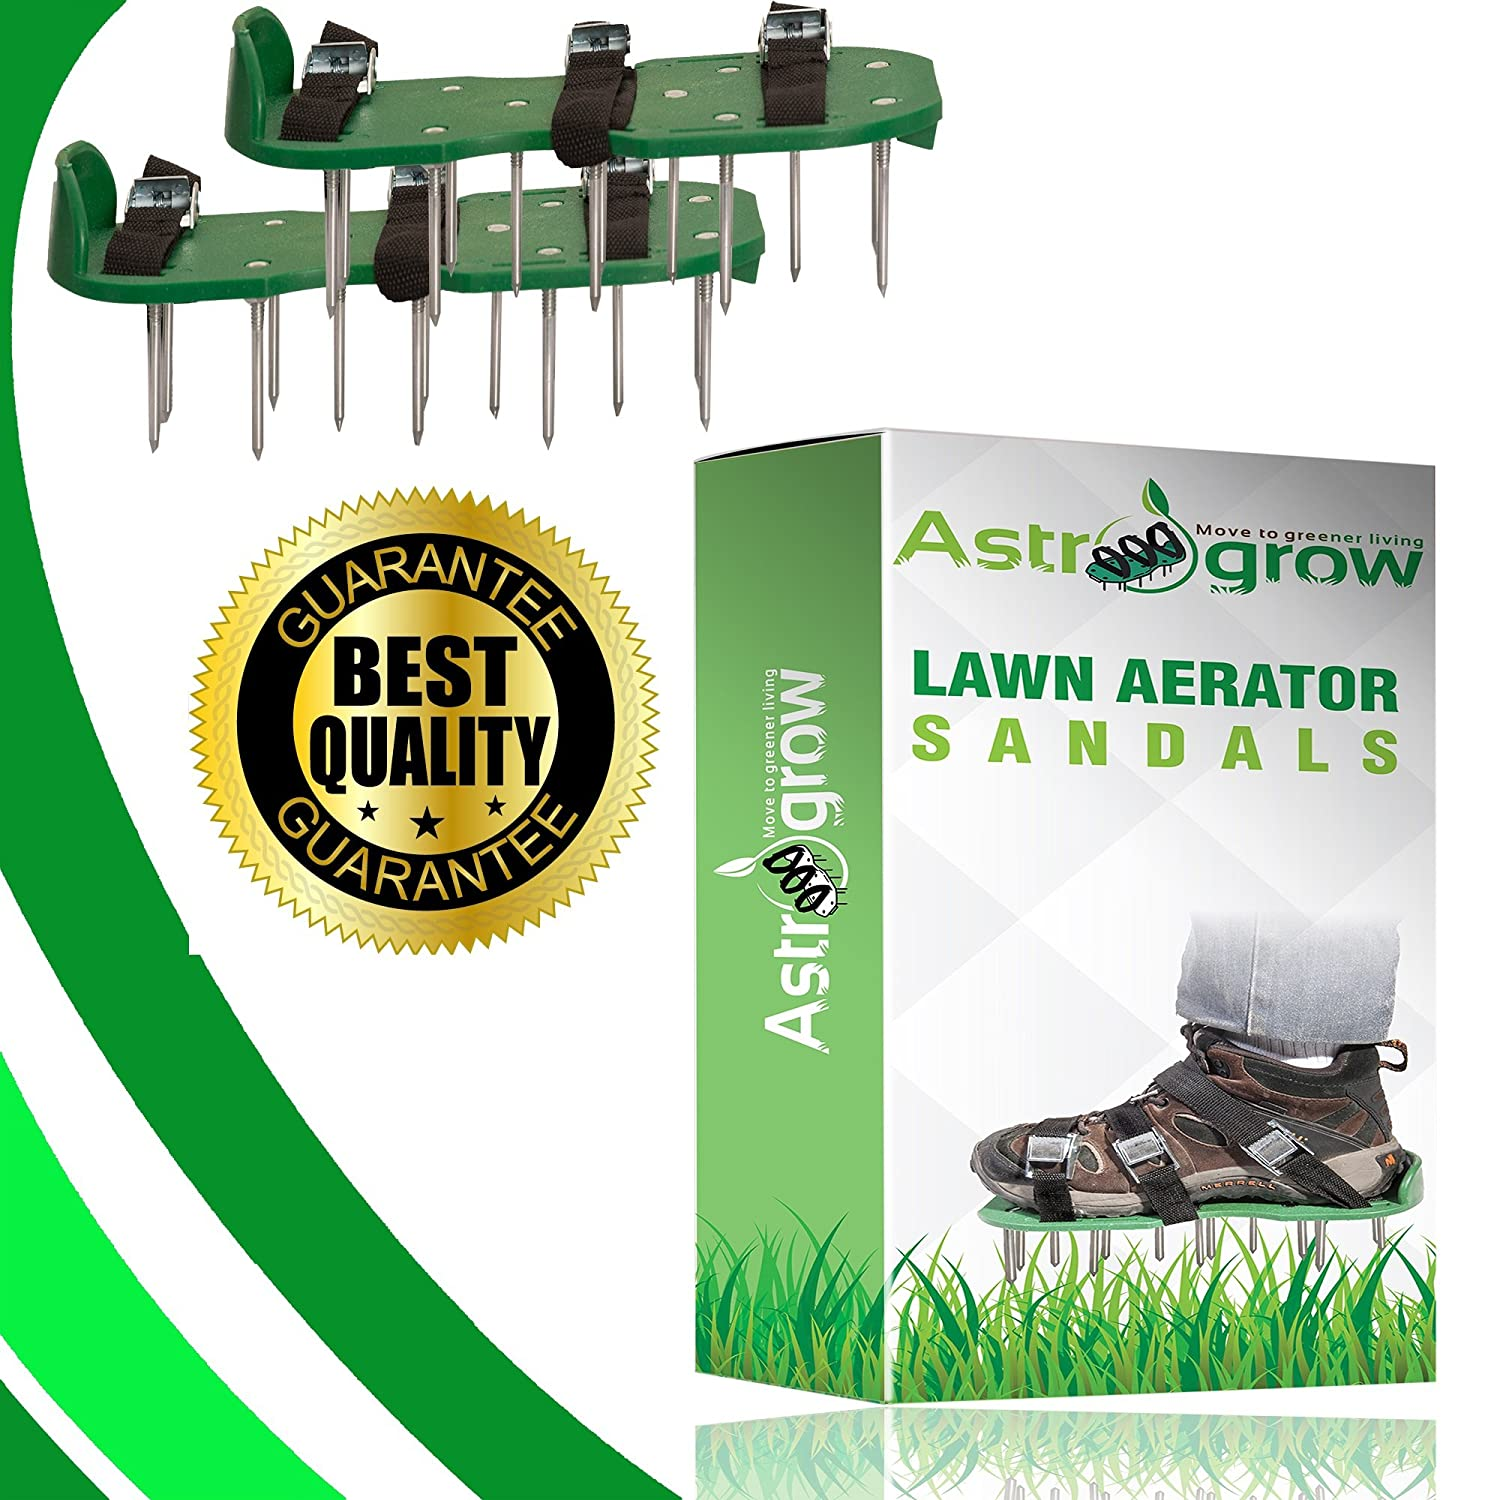 alpha-ene.co.jp Heavy Duty Spiked Aerator Sandals for Revive Lawn ...